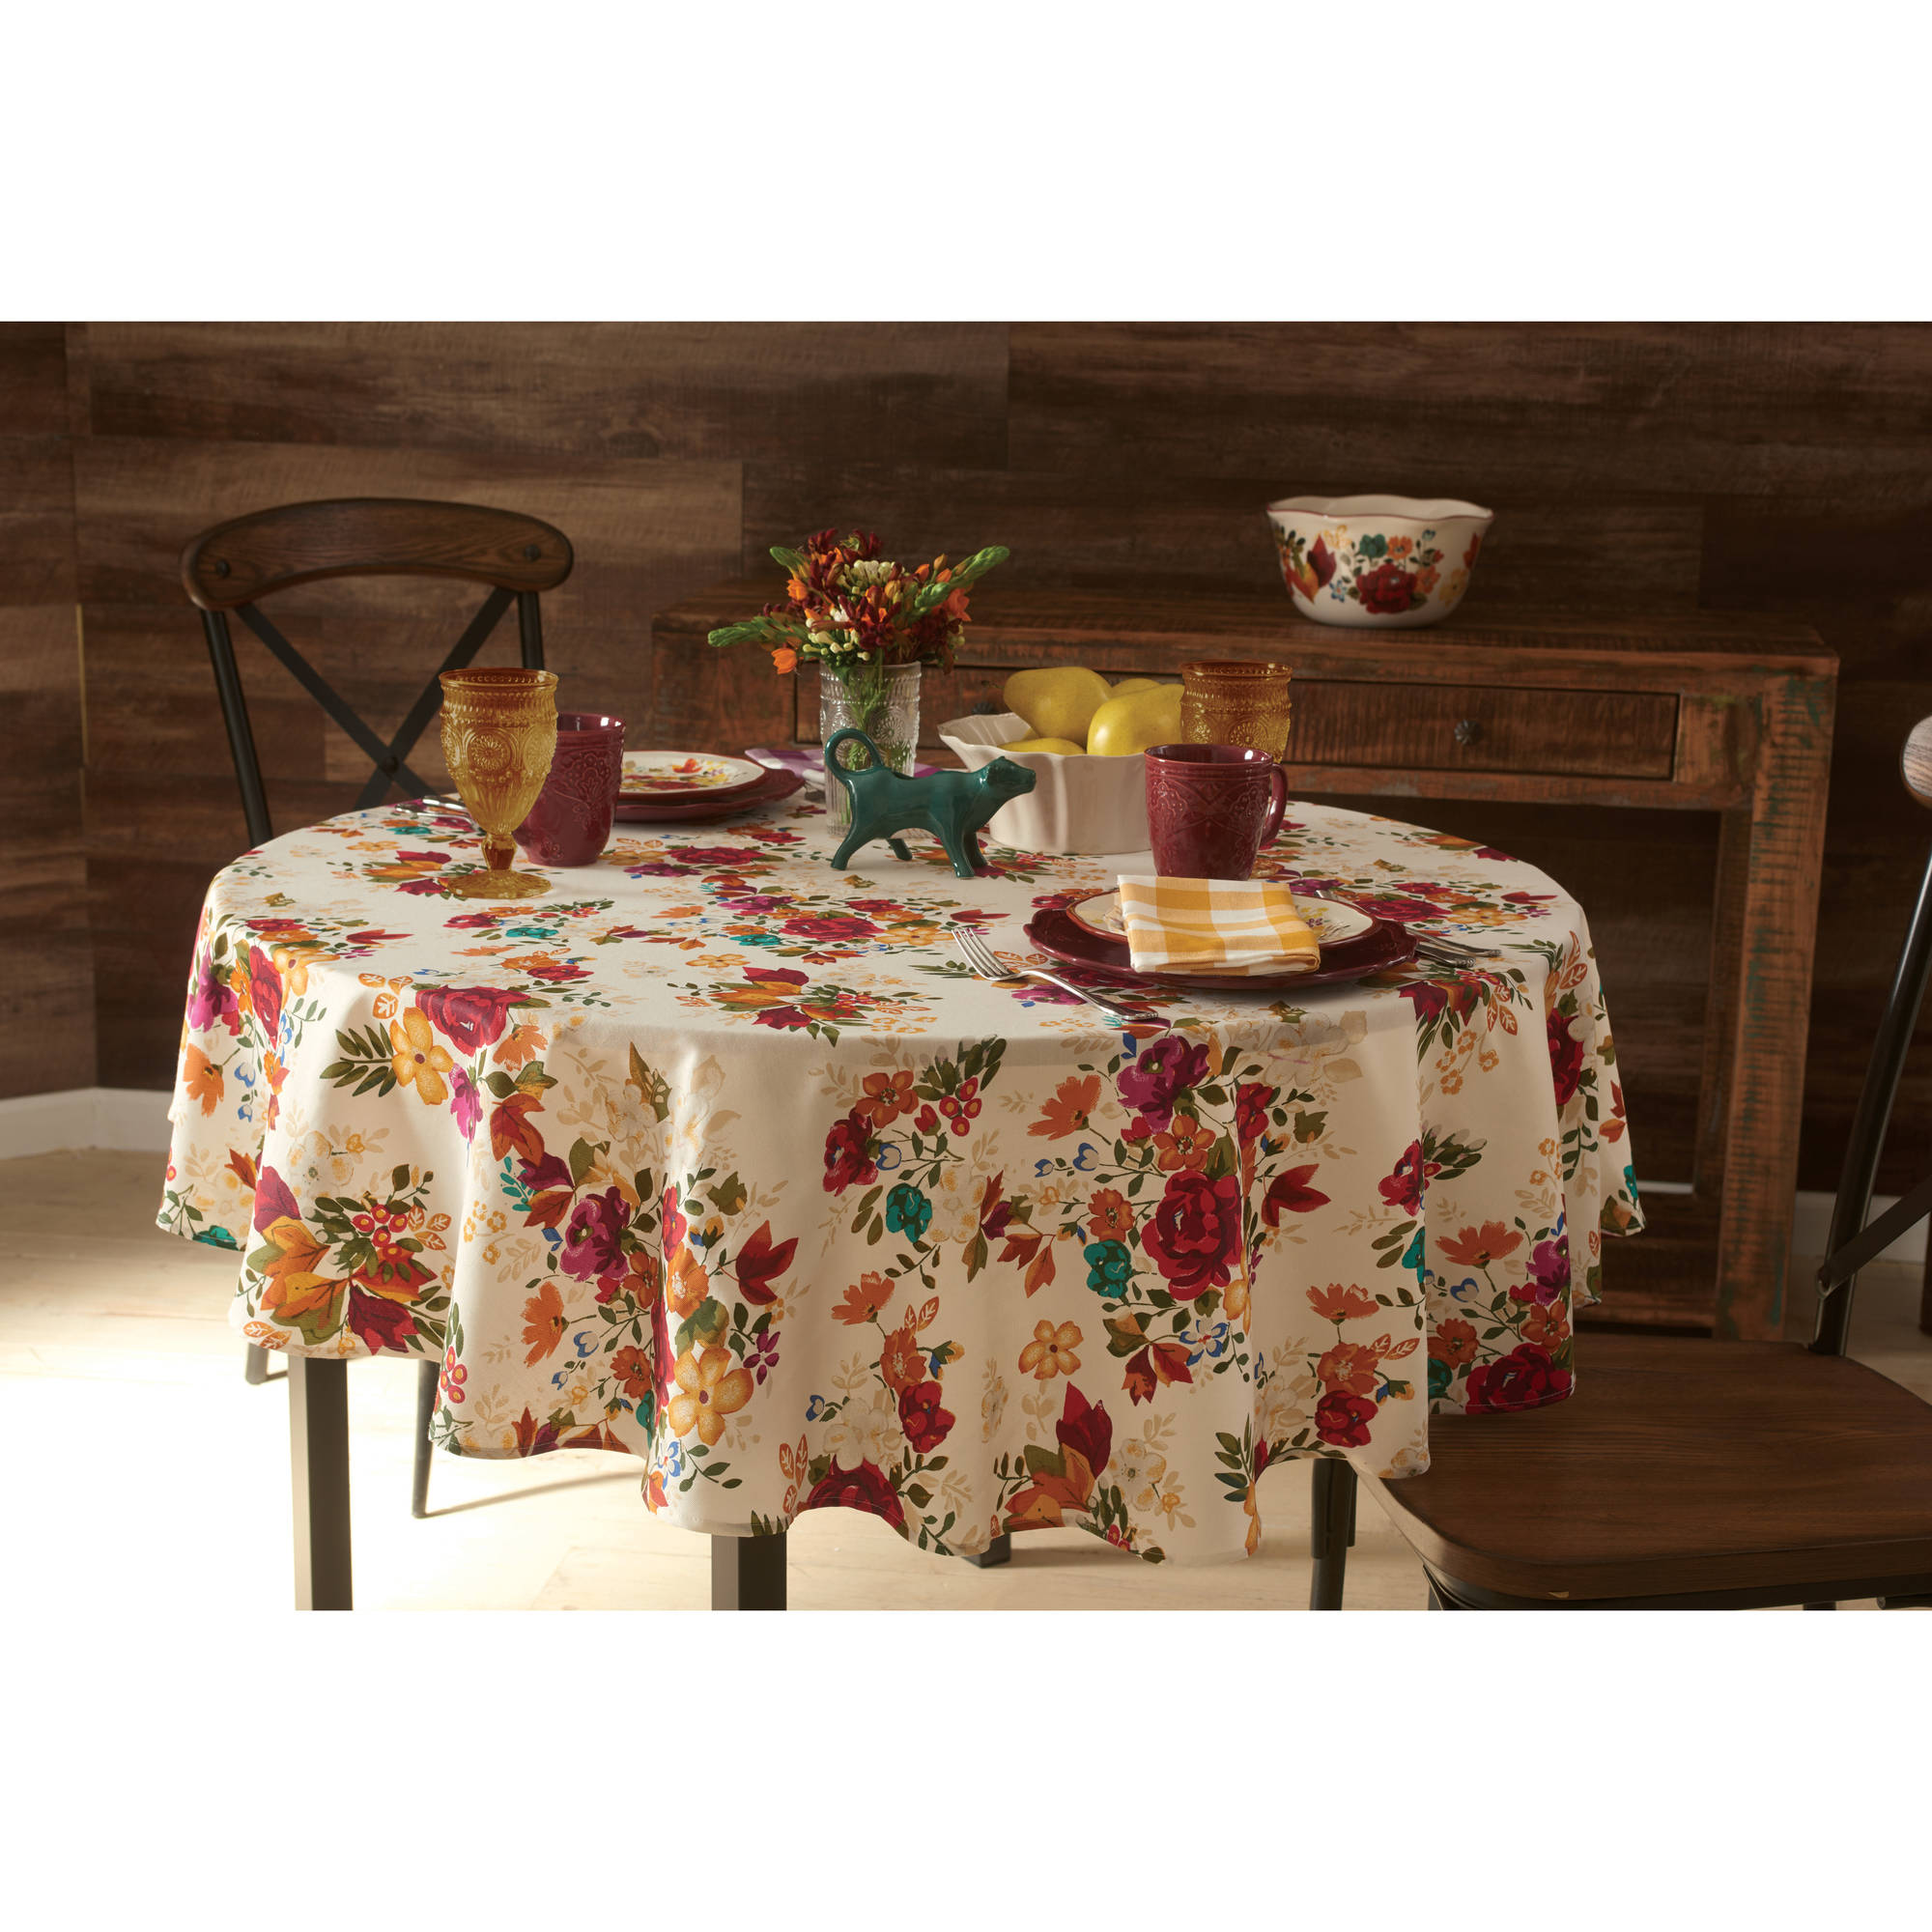 pioneer woman timeless floral tablecloth 70 round - Kitchen Table Covers Vinyl